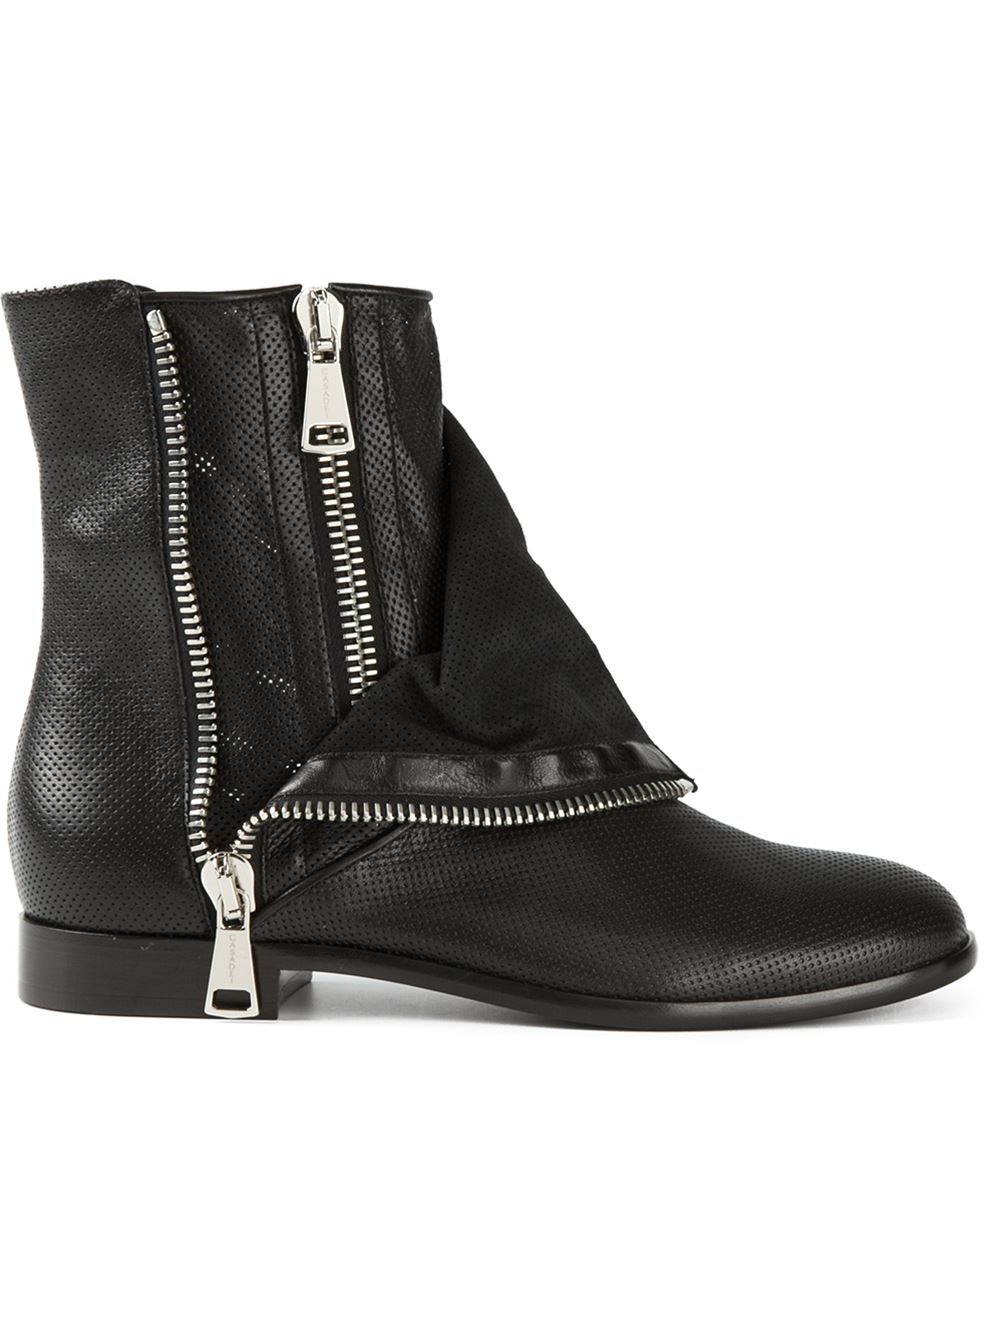 casadei zipper biker boots in black lyst. Black Bedroom Furniture Sets. Home Design Ideas